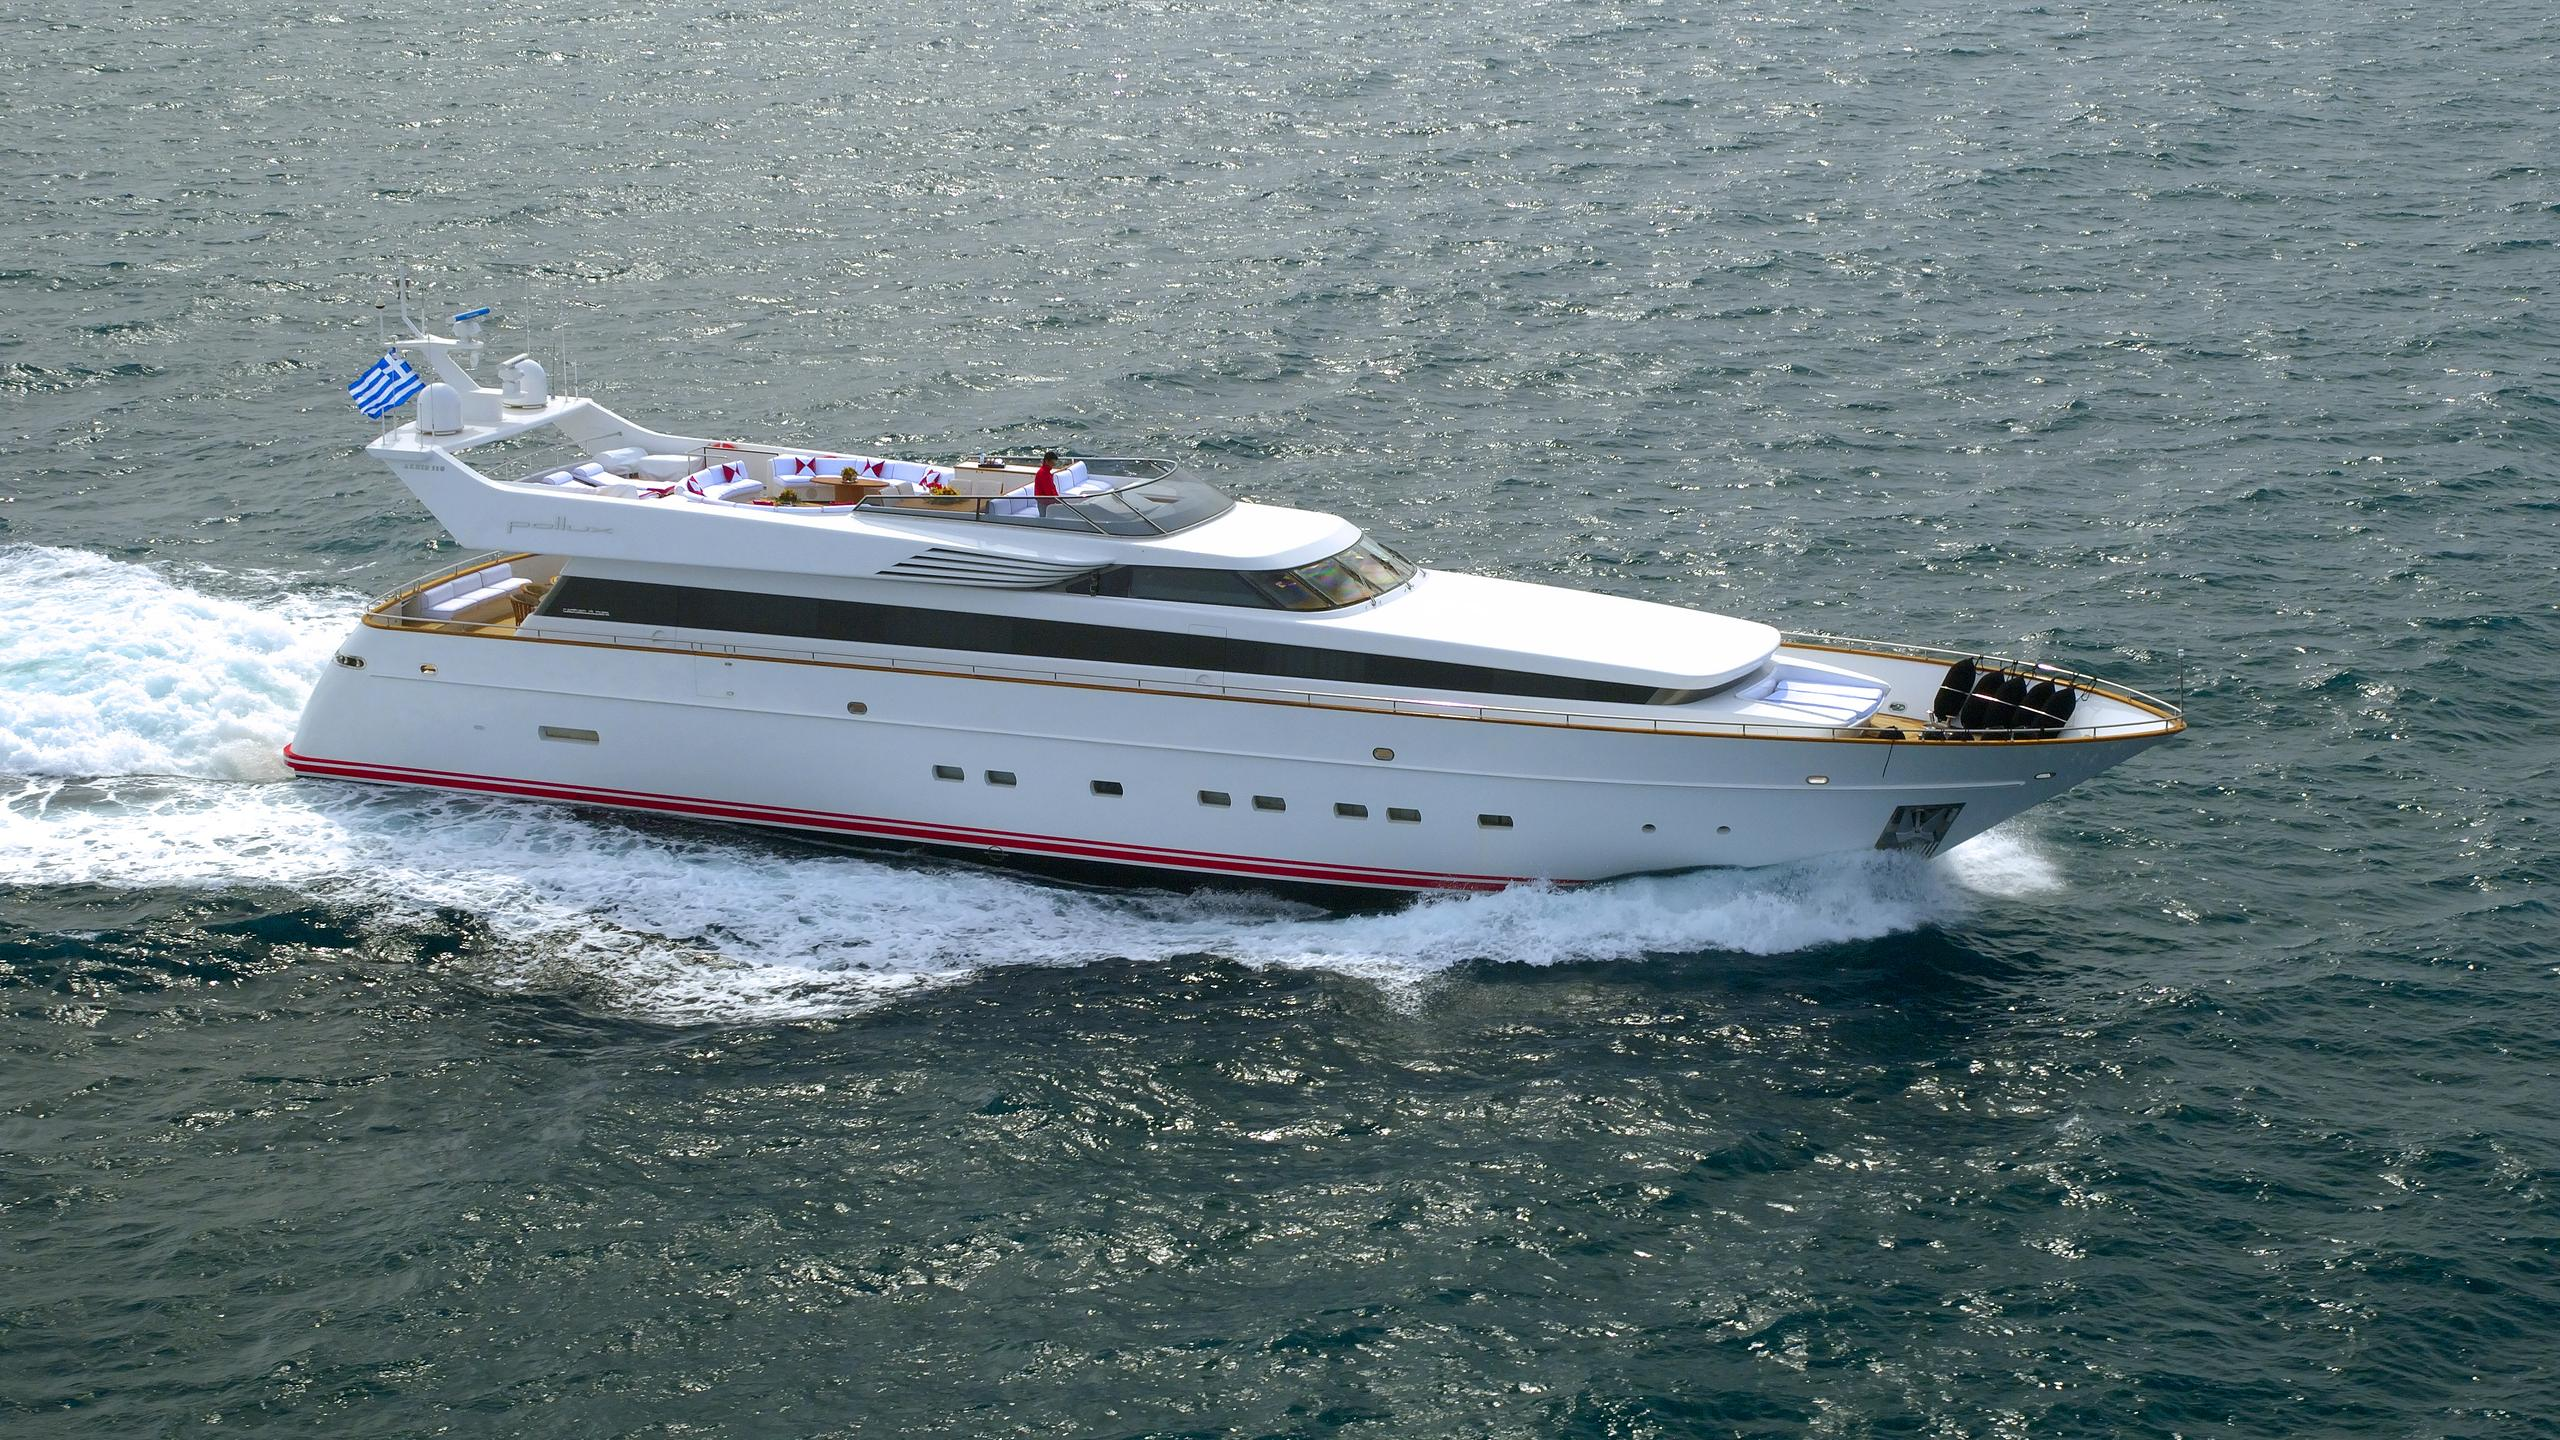 pollux-yacht-for-charter-profile